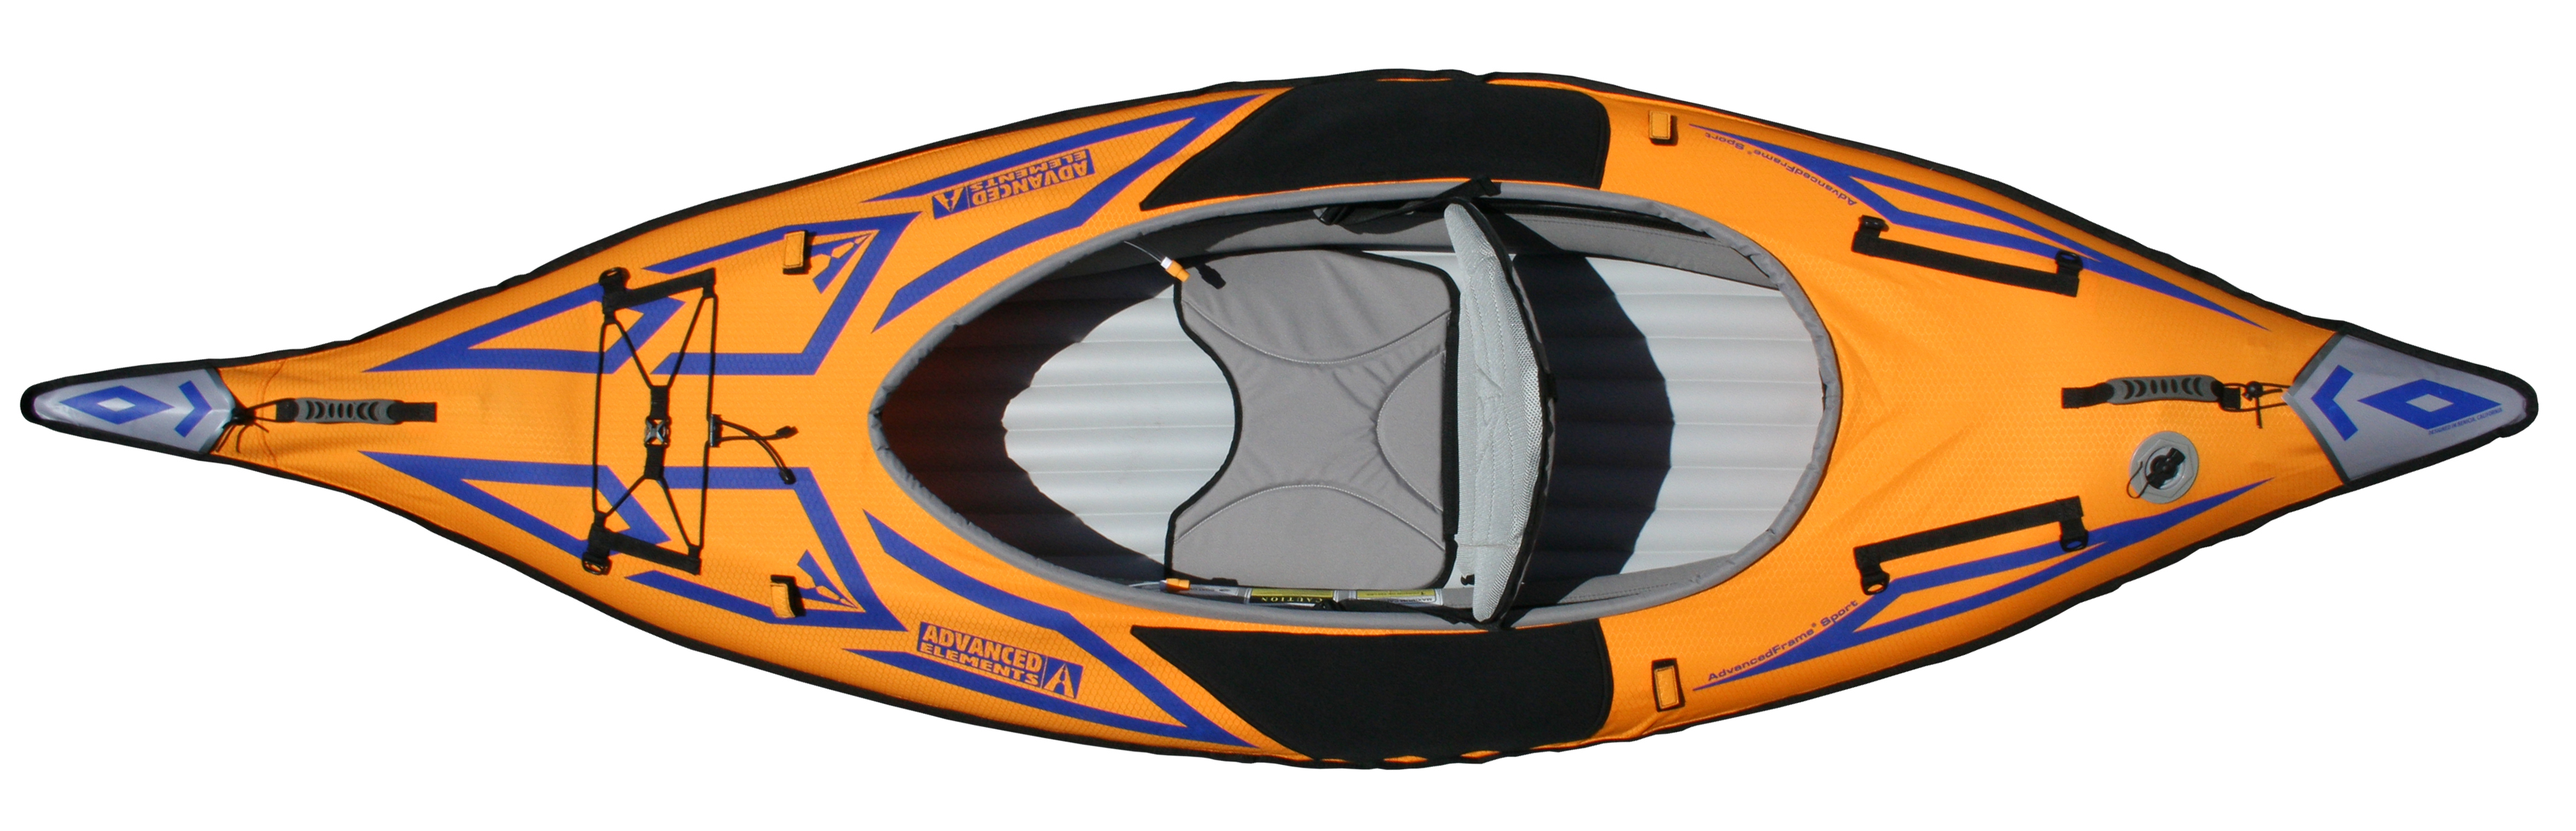 Kayaks: AdvancedFrame Sport by Advanced Elements - Image 2429